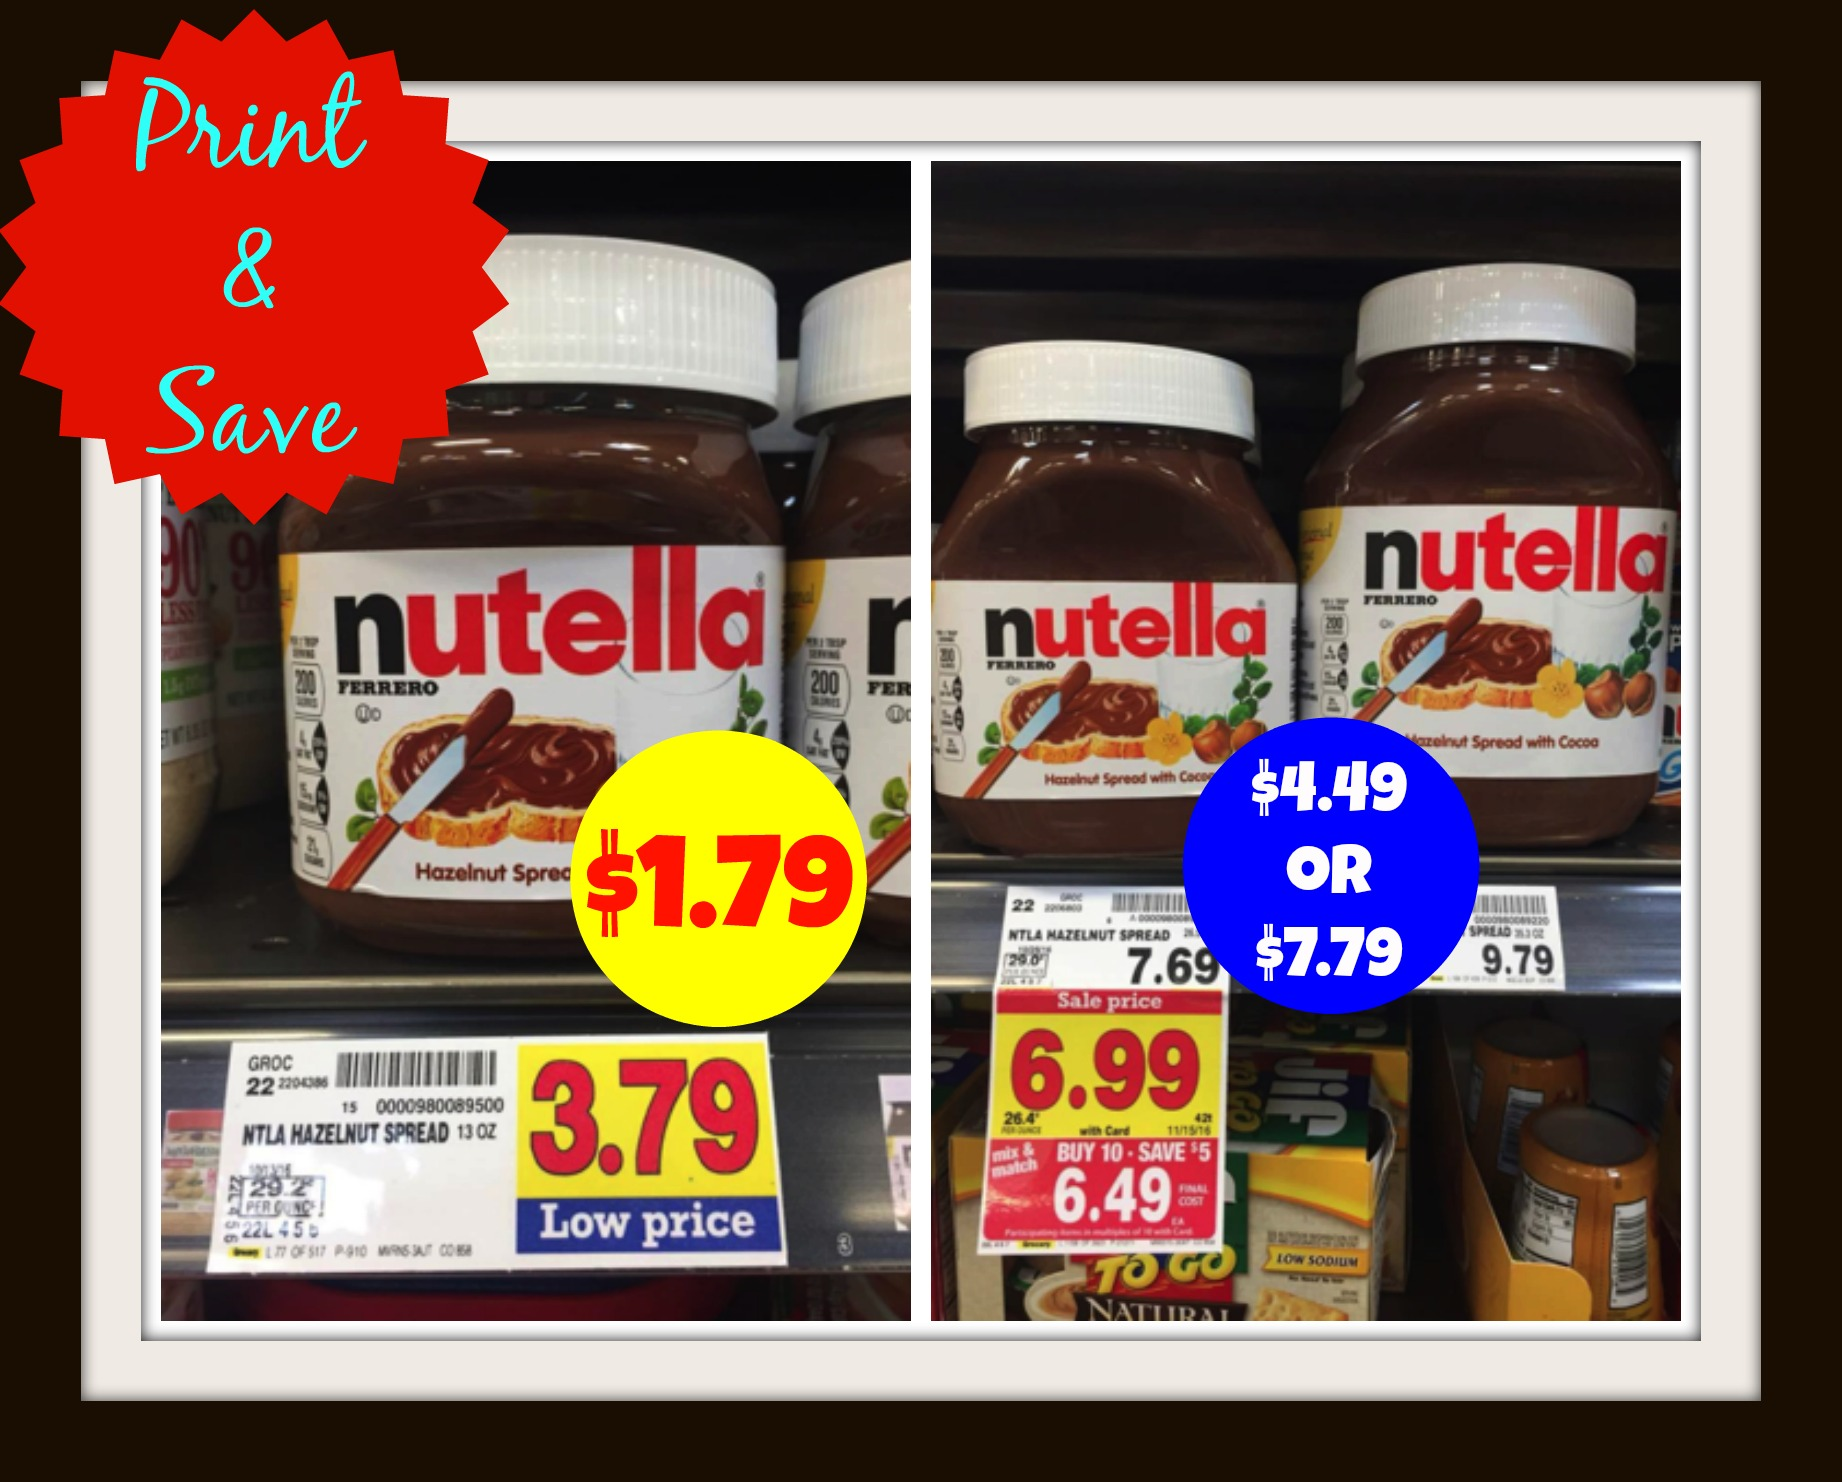 graphic regarding Nutella Printable Coupon identified as Print Help save Fresh Nutella Coupon for Kroger Sale!! Kroger Krazy